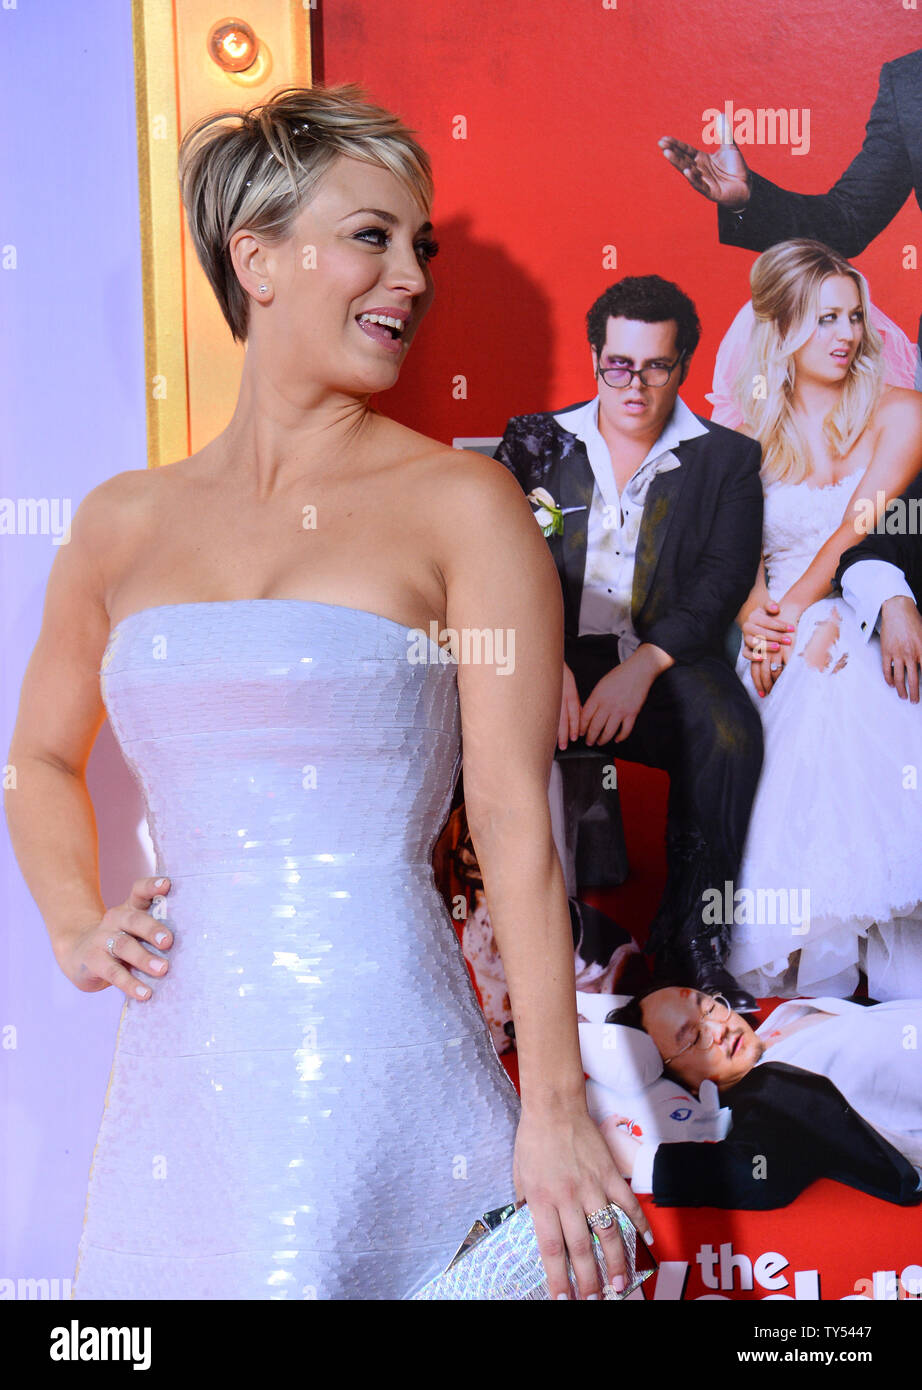 Wedding Ringer Cast.Cast Member Kaley Cuoco Attends The Premiere Of The Motion Picture